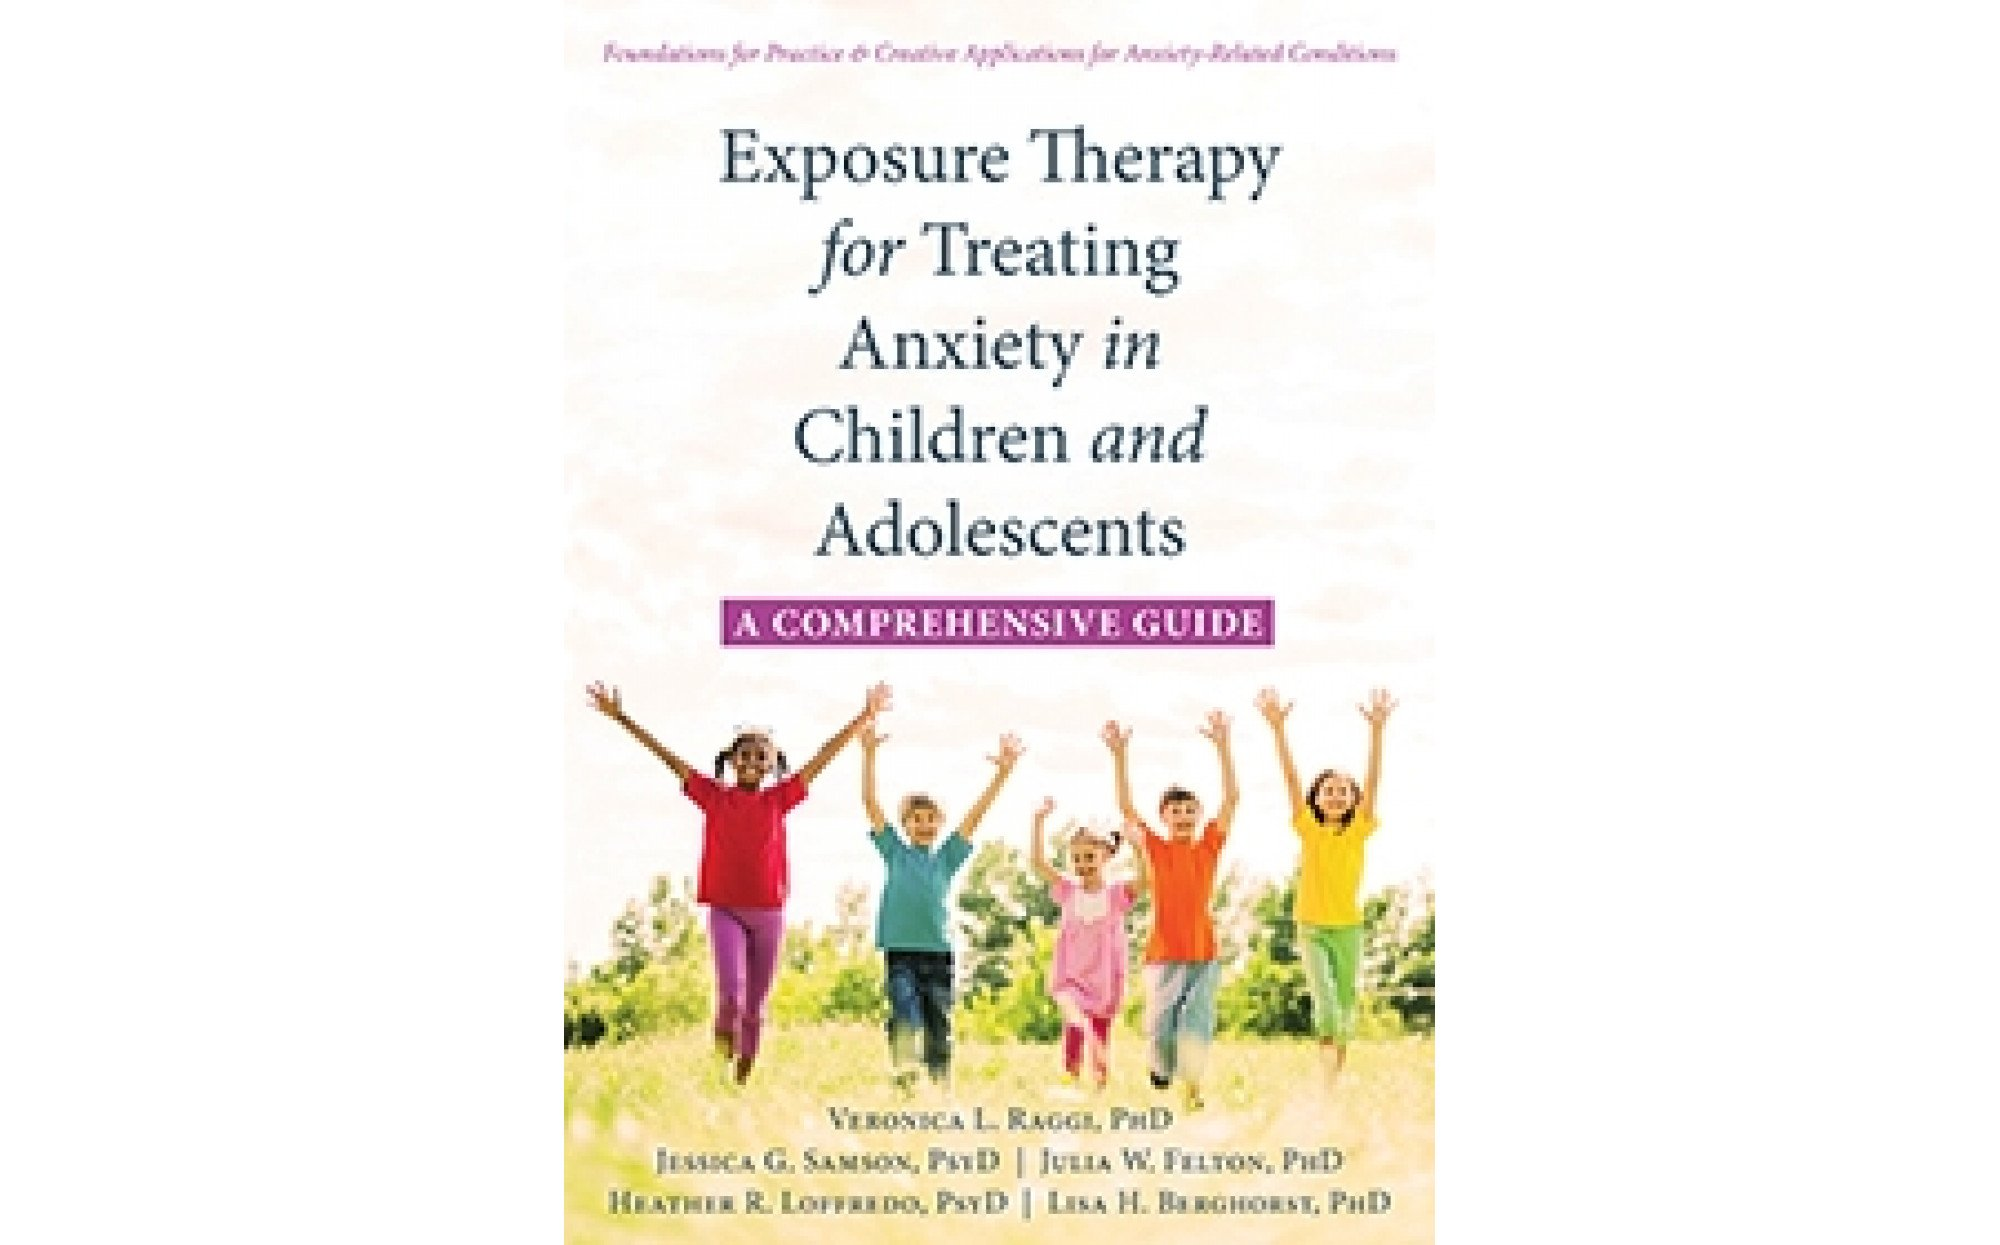 music therapy within children and adolescent bereavement Attachment disorder and depression4,5,6 music therapists may see youth in schools,5 hospitals7 or within  adolescent journal of music therapy  children.